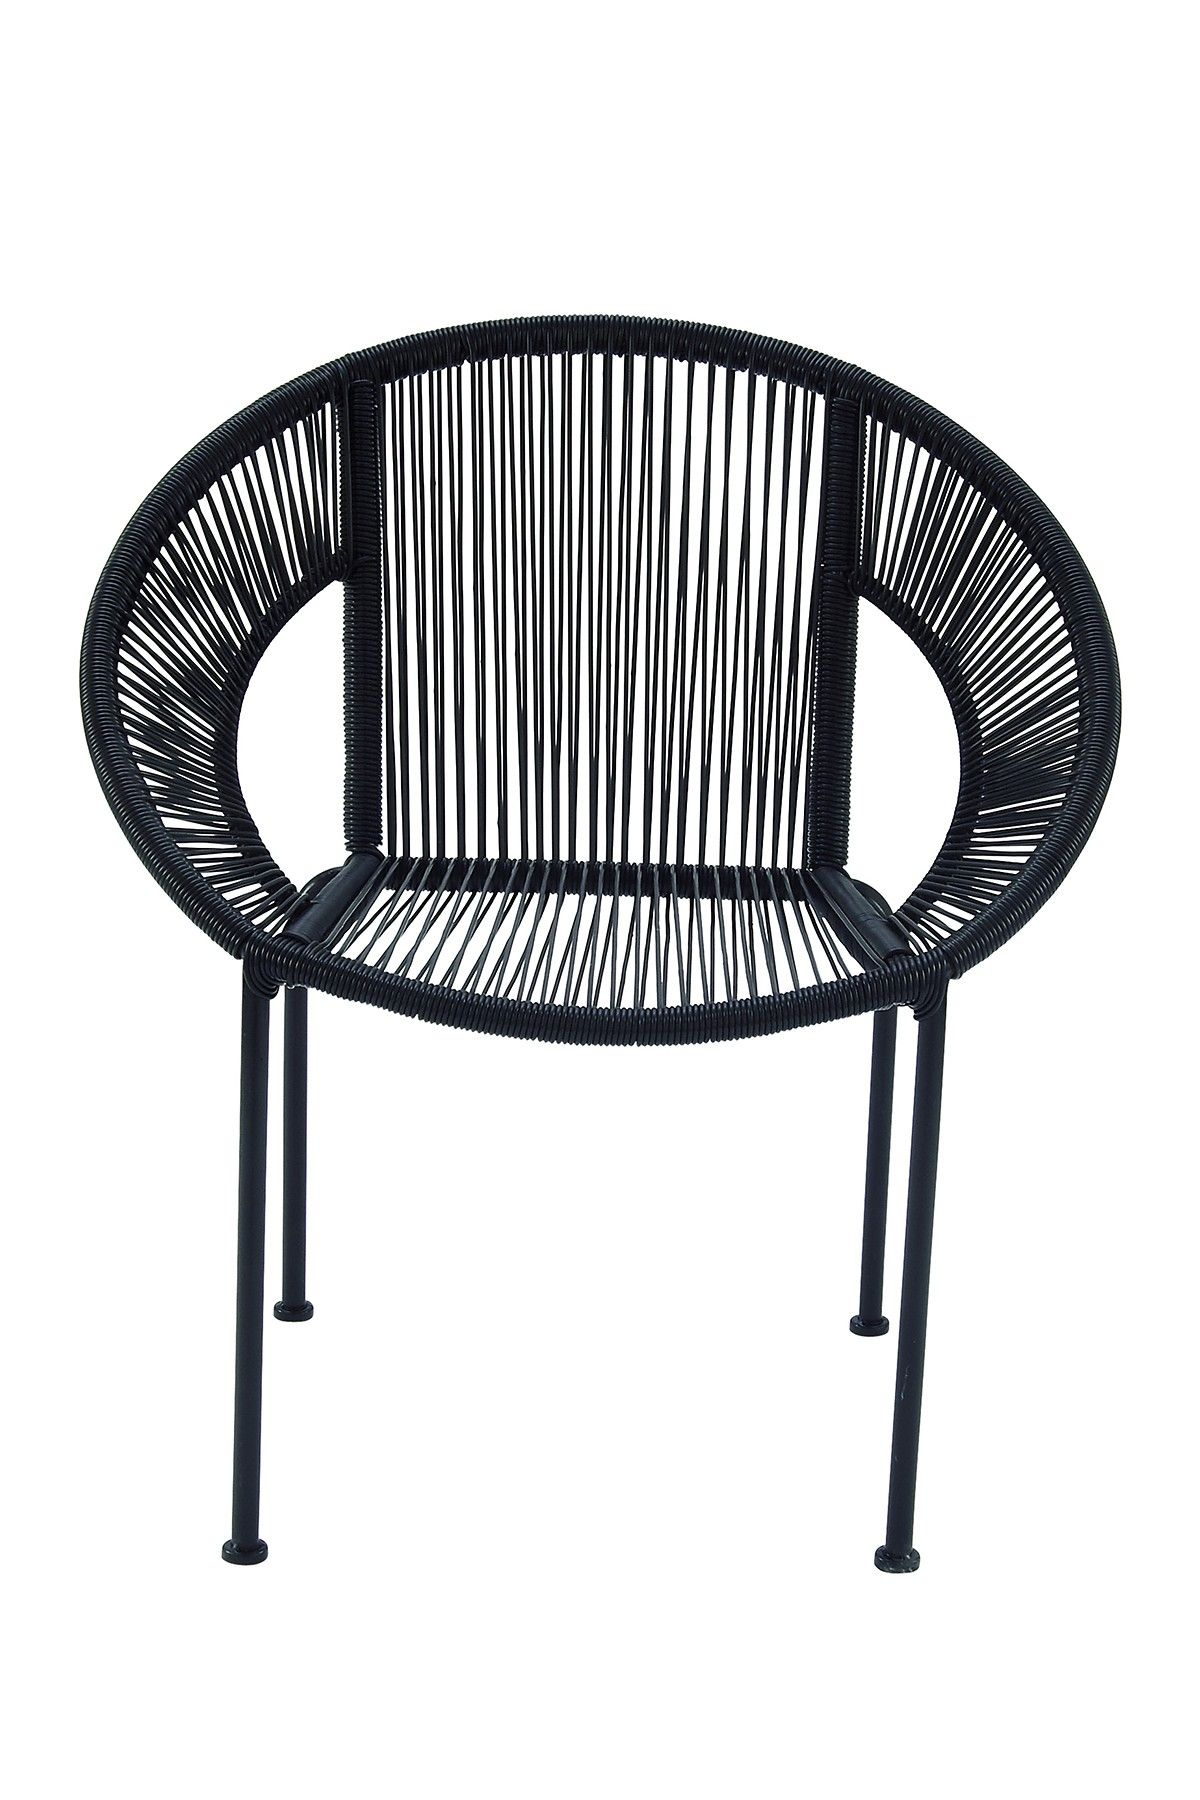 Beau UMA Footed Chair Footed Chair: Synthetic Rattan Chair Iron Frame  Measurements: W X D X H Seat Height Material: Plastic Rattan And Iron Care:  Wipe With A ...